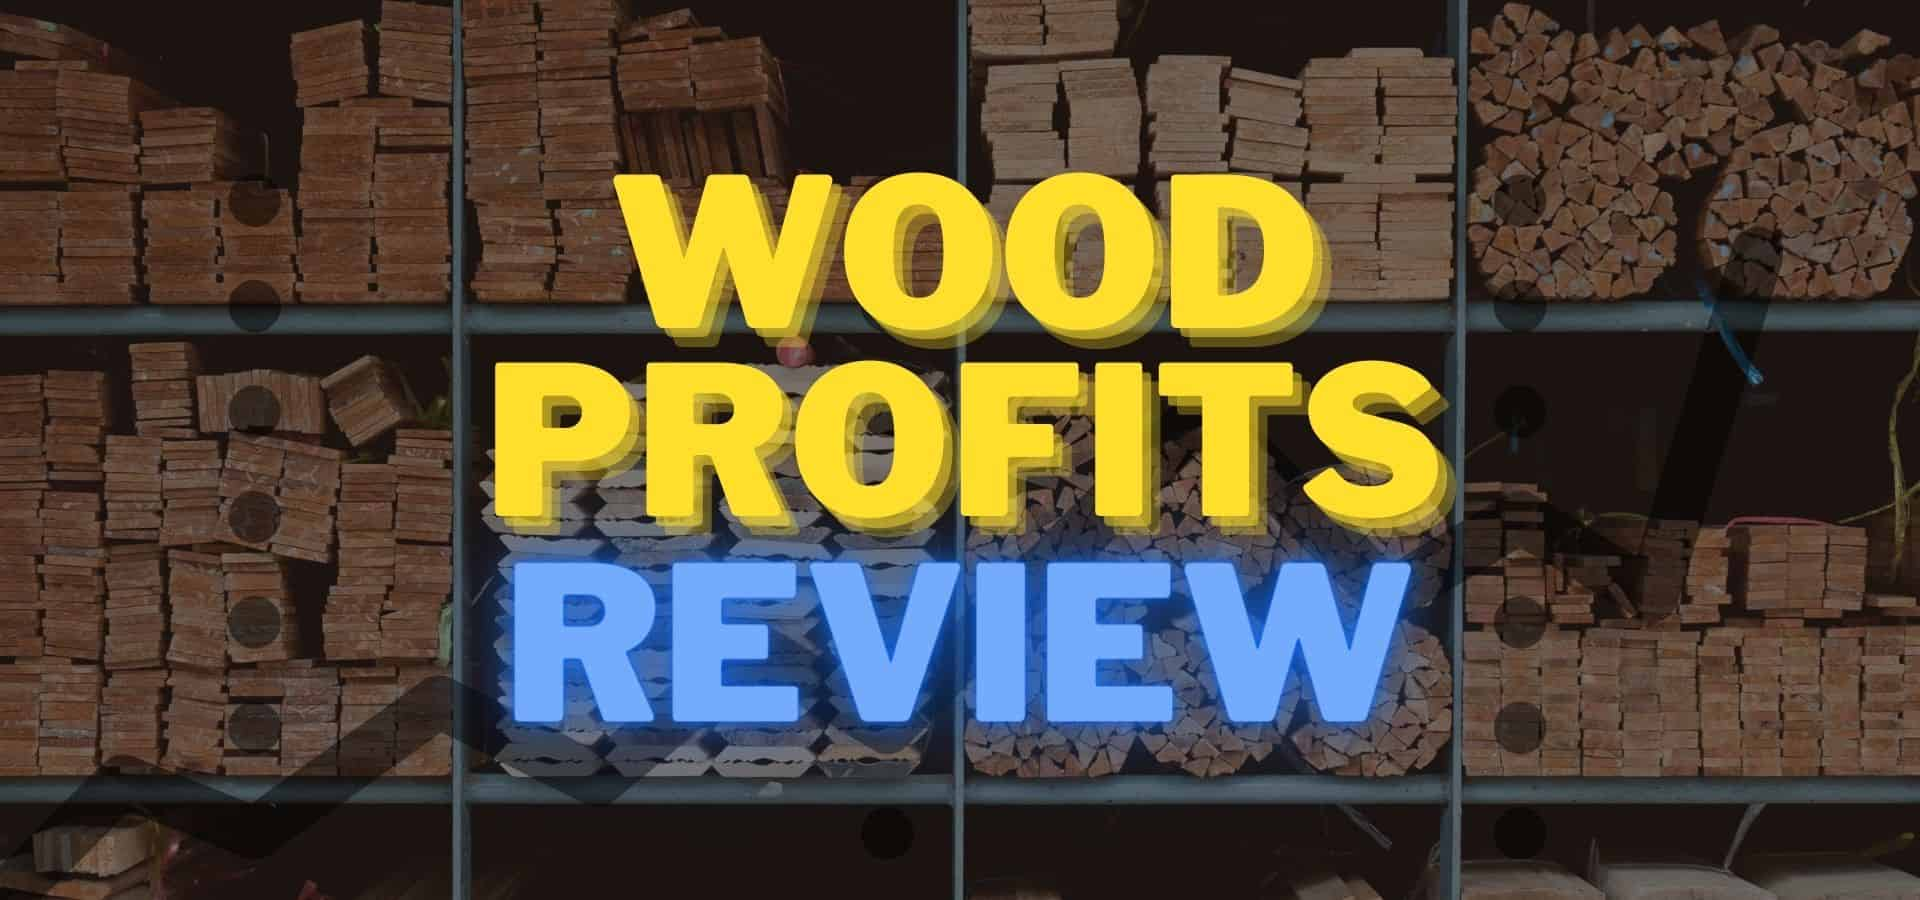 Wood Profits Review: Is It Just Another Get Rich Scam?